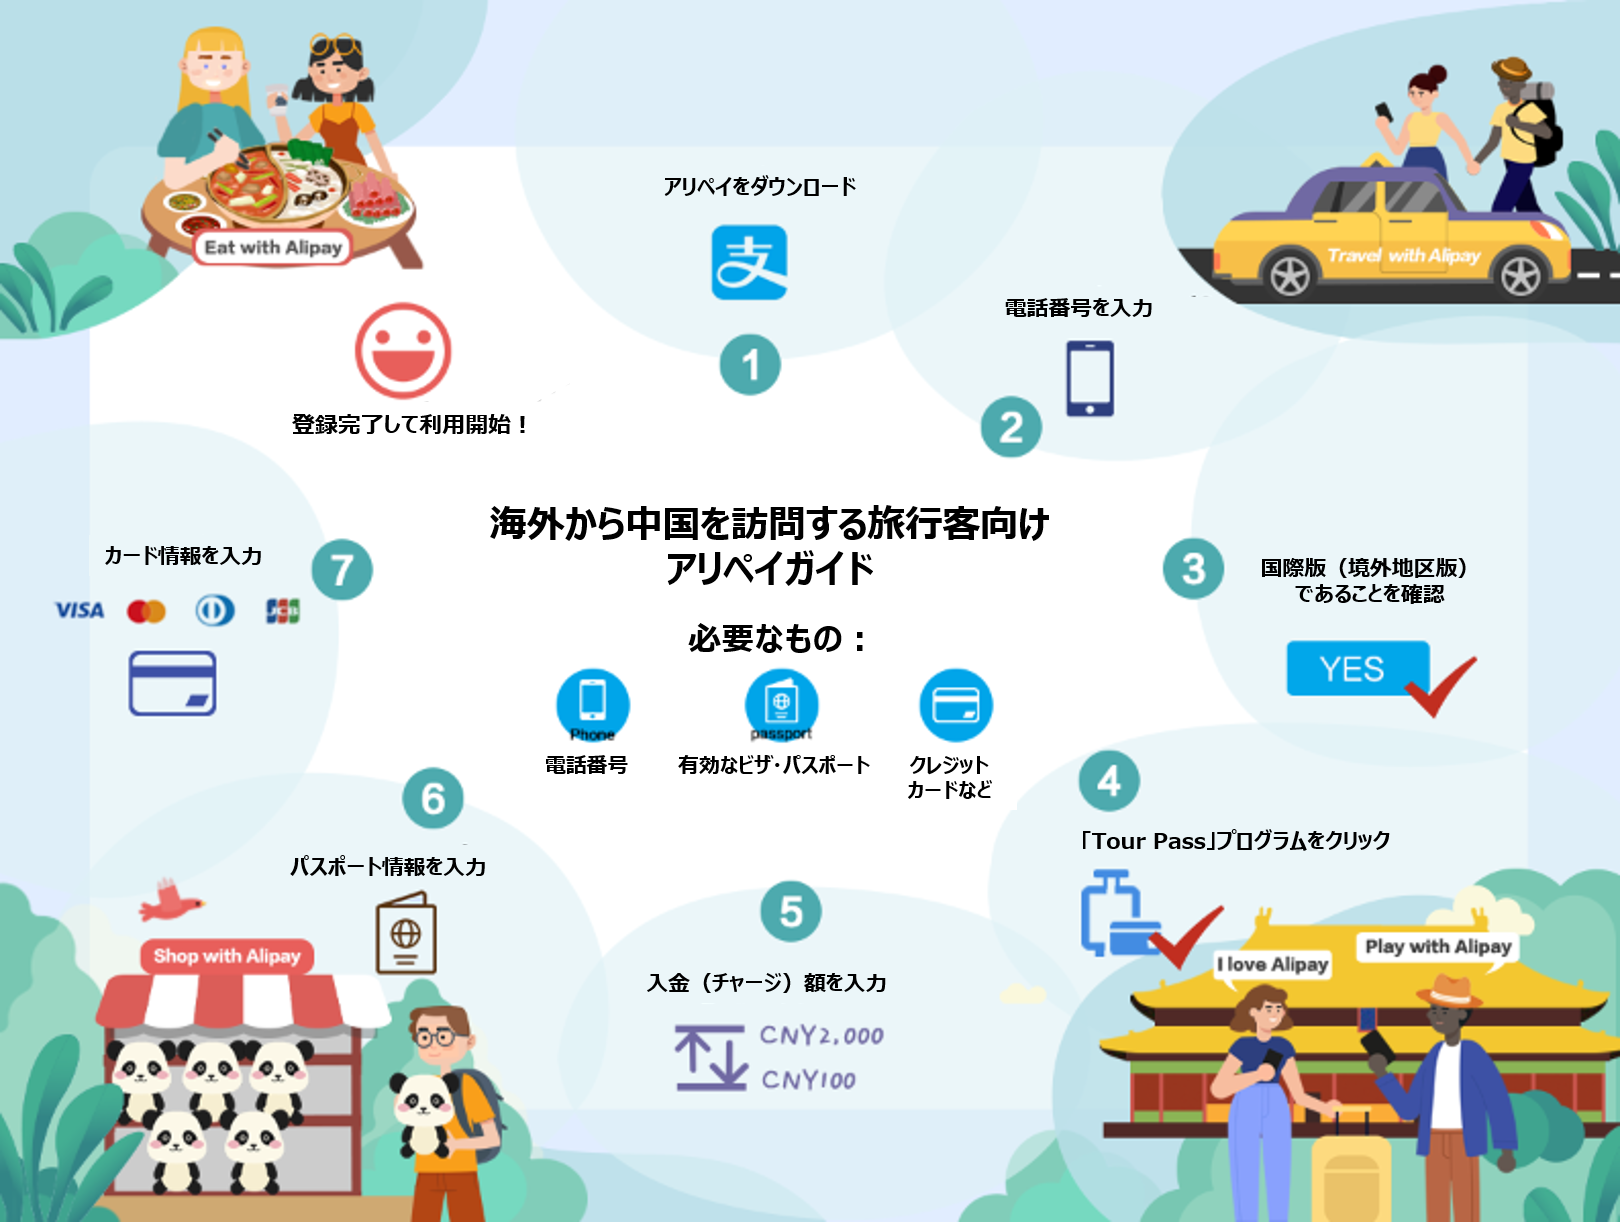 JP_Guide to Alipay.png